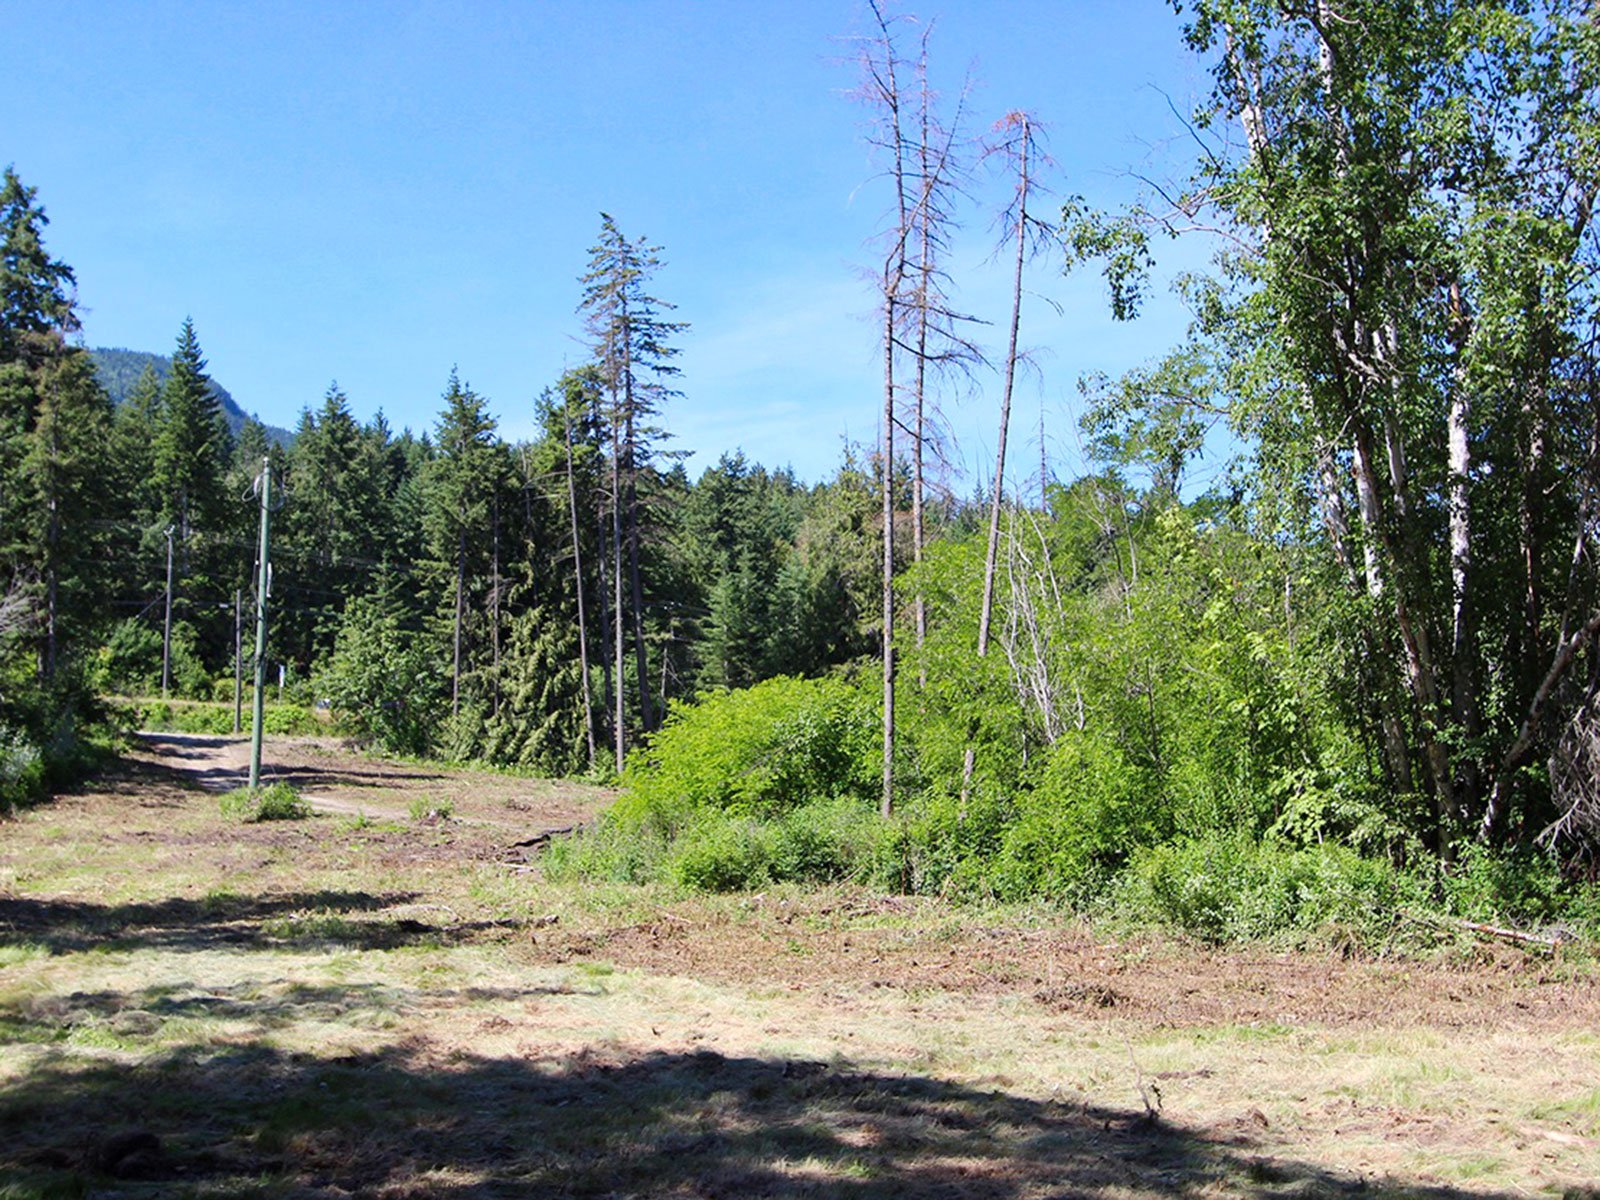 Photo 35: Photos: 663 Waverly Park Frontage Road in Sorrento, BC: Land Only for sale (Sorrento)  : MLS®# 10186241